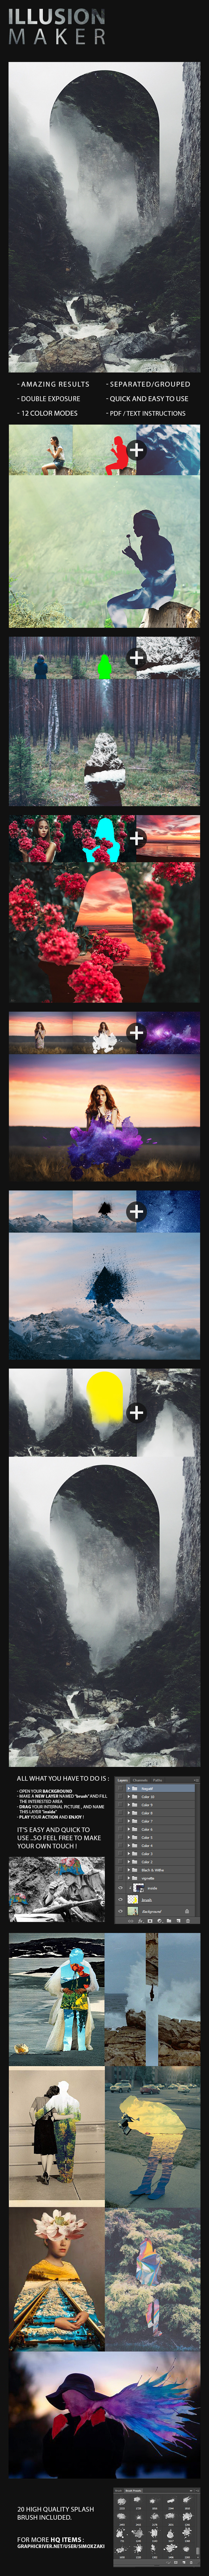 Illusion Action - Photo Effects Actions